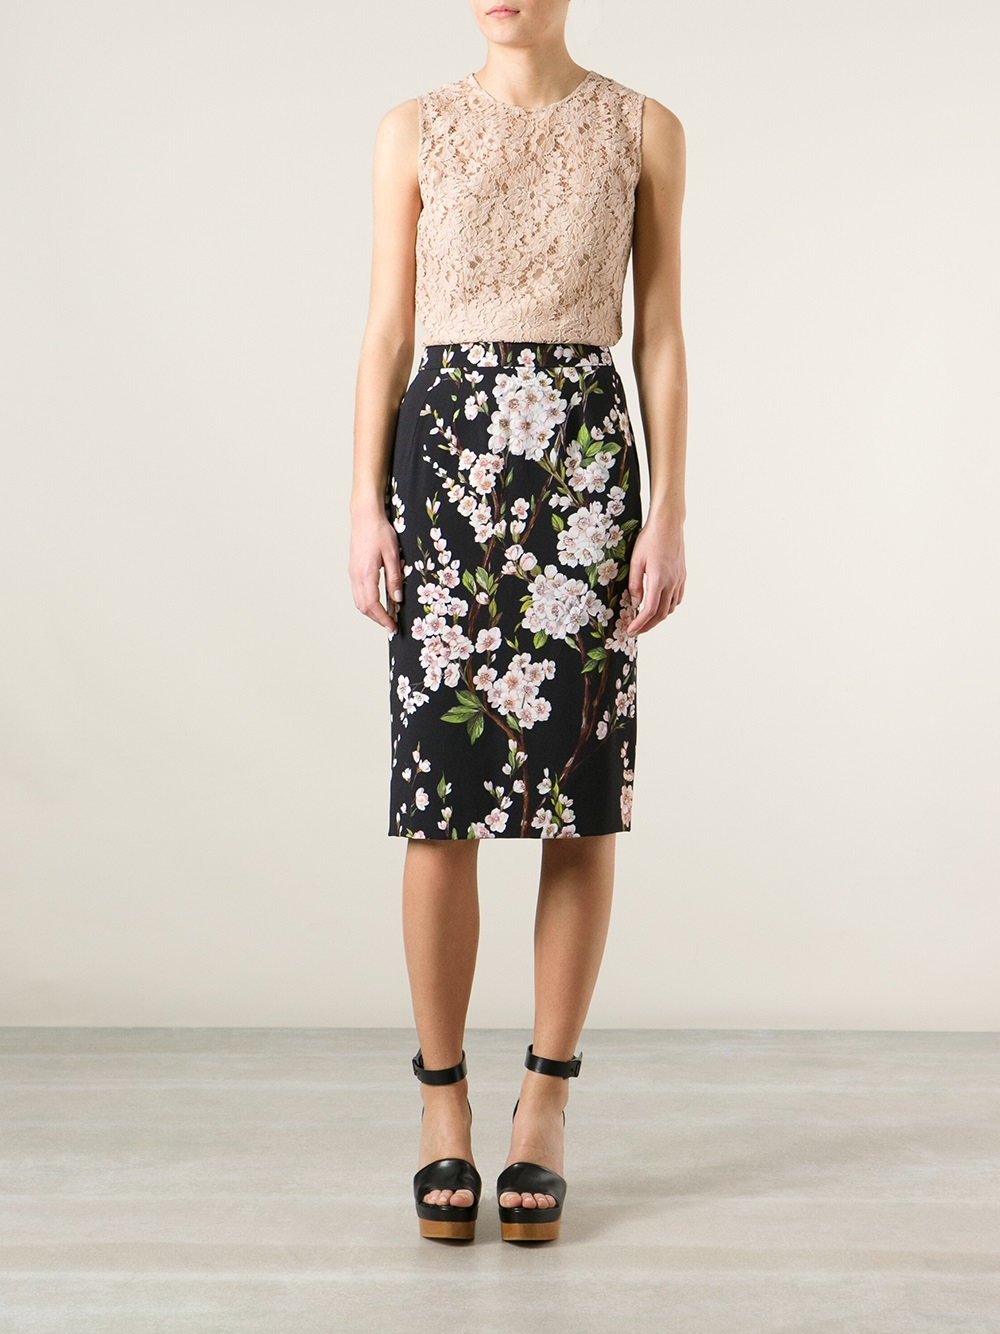 Dolce & gabbana Floral Print Pencil Skirt in Black | Lyst